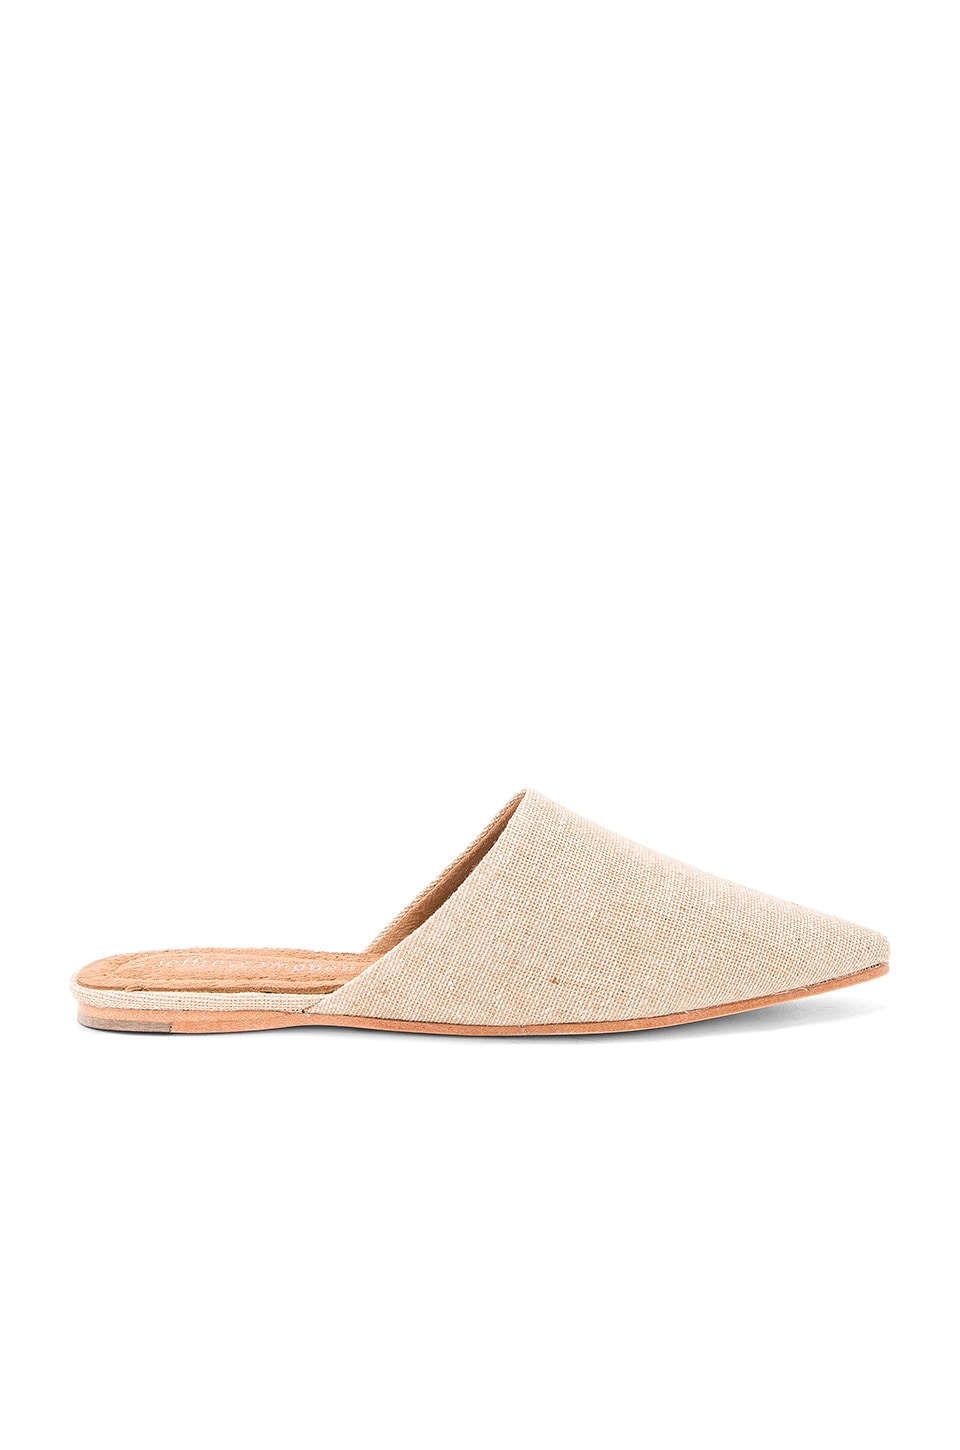 Jeffrey Campbell Doshi Slides in Natural Linen